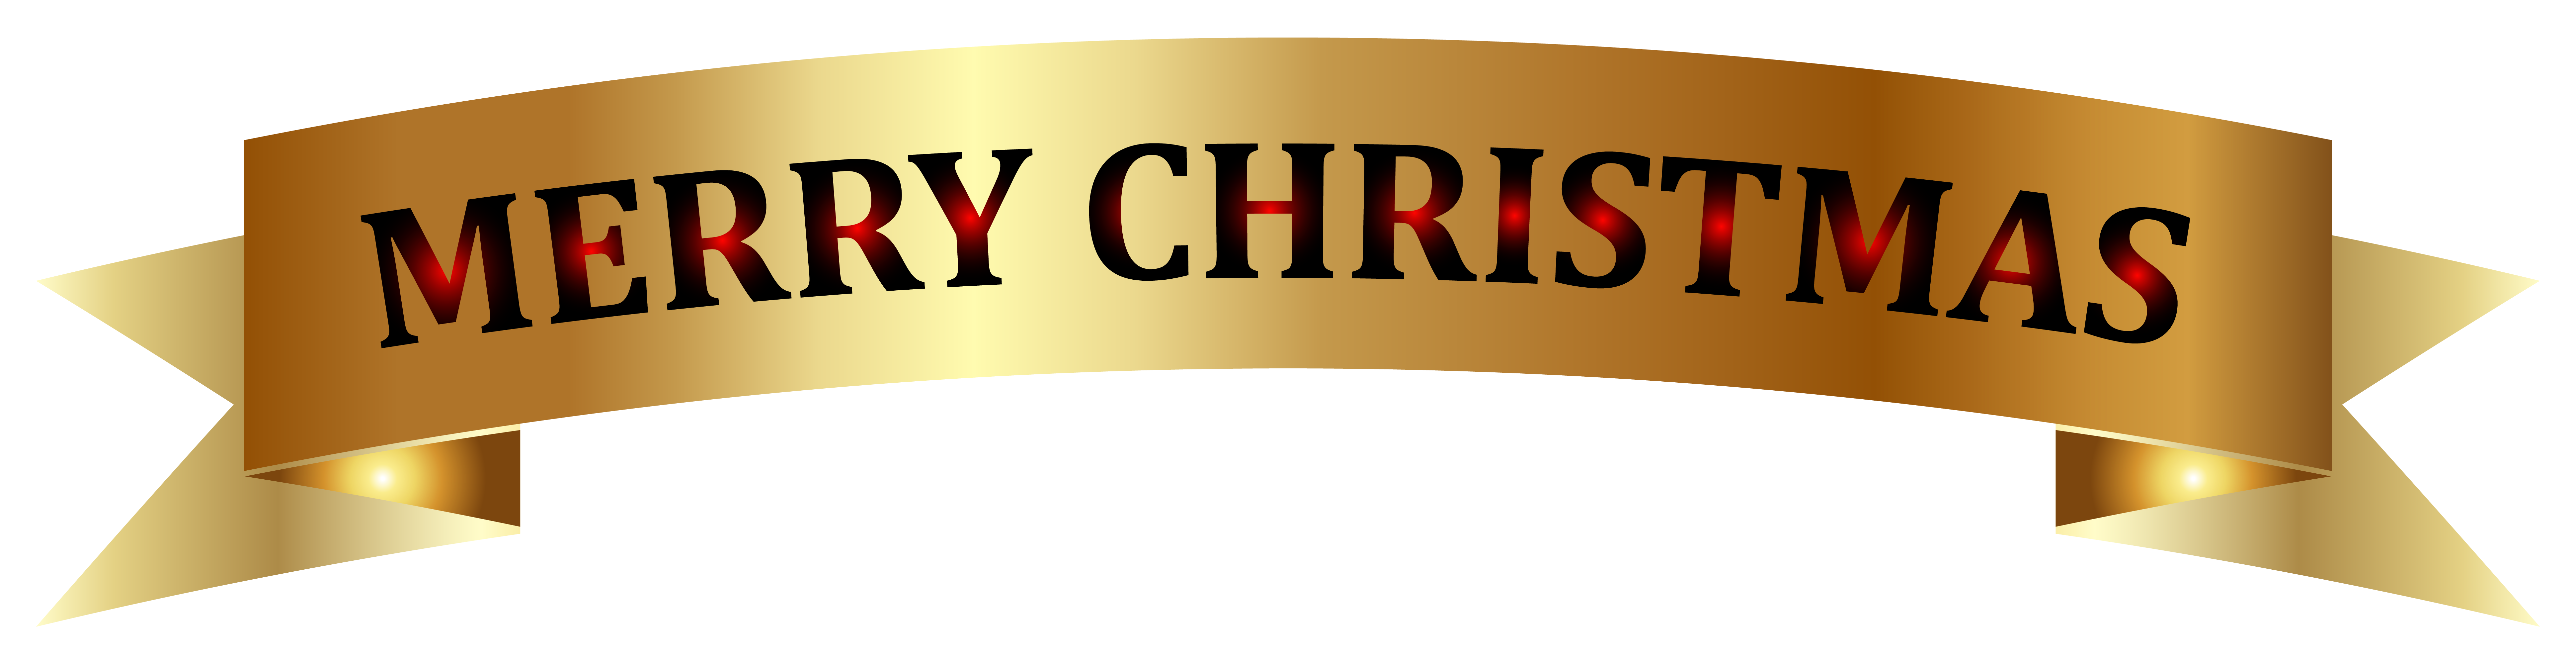 Christmas banners clipart vector free download Merry Christmas Banner Clipart – Merry Christmas And Happy New Year 2018 vector free download